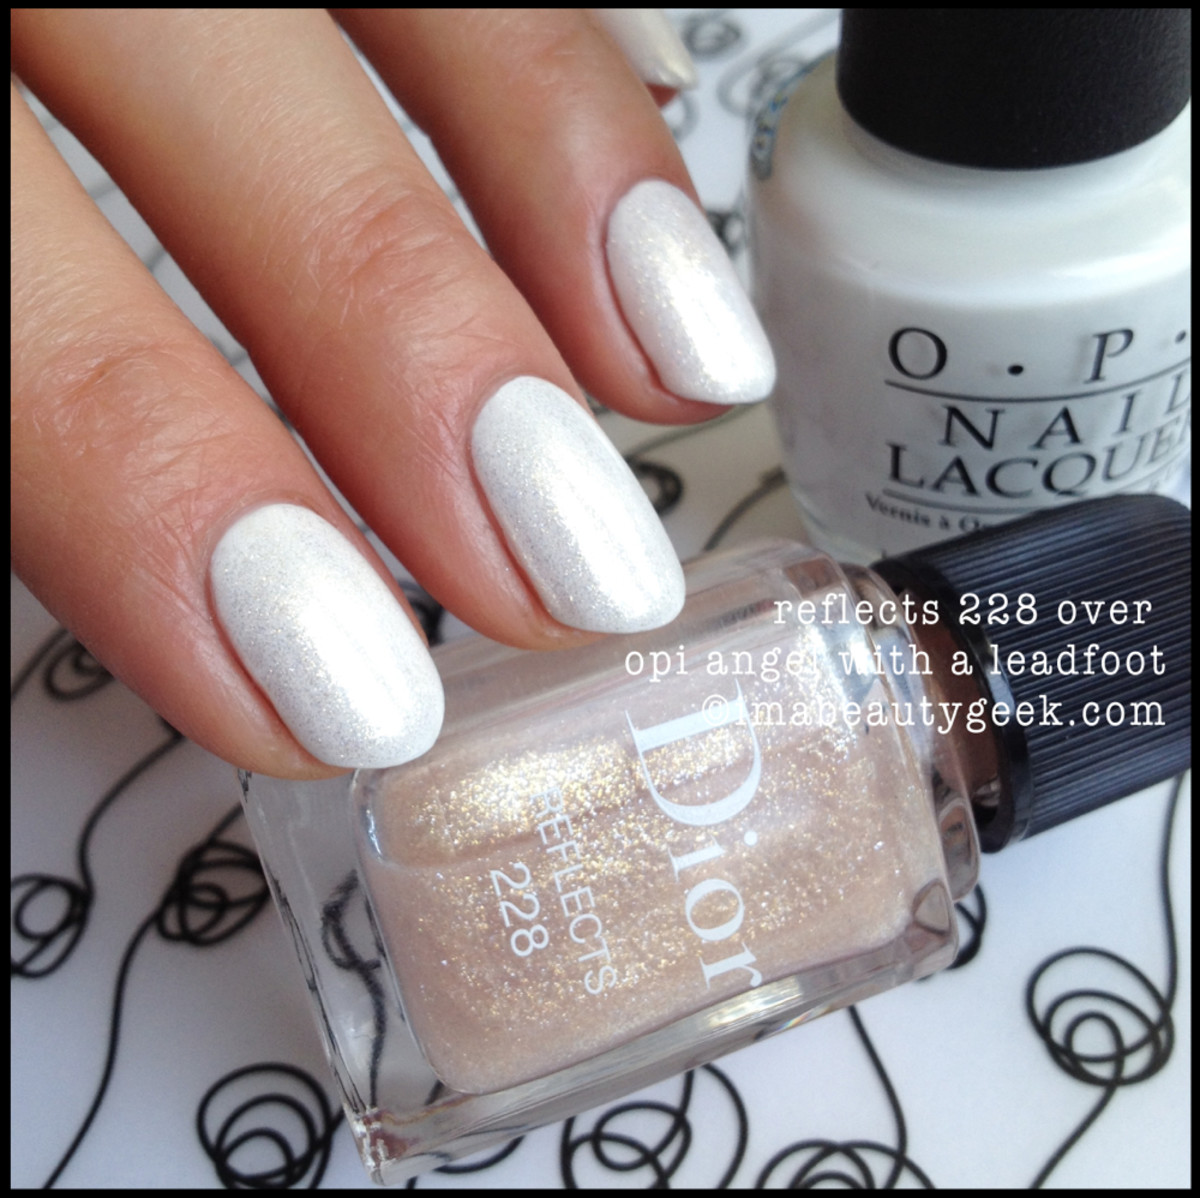 Dior Vernis Reflects 228 over OPI white